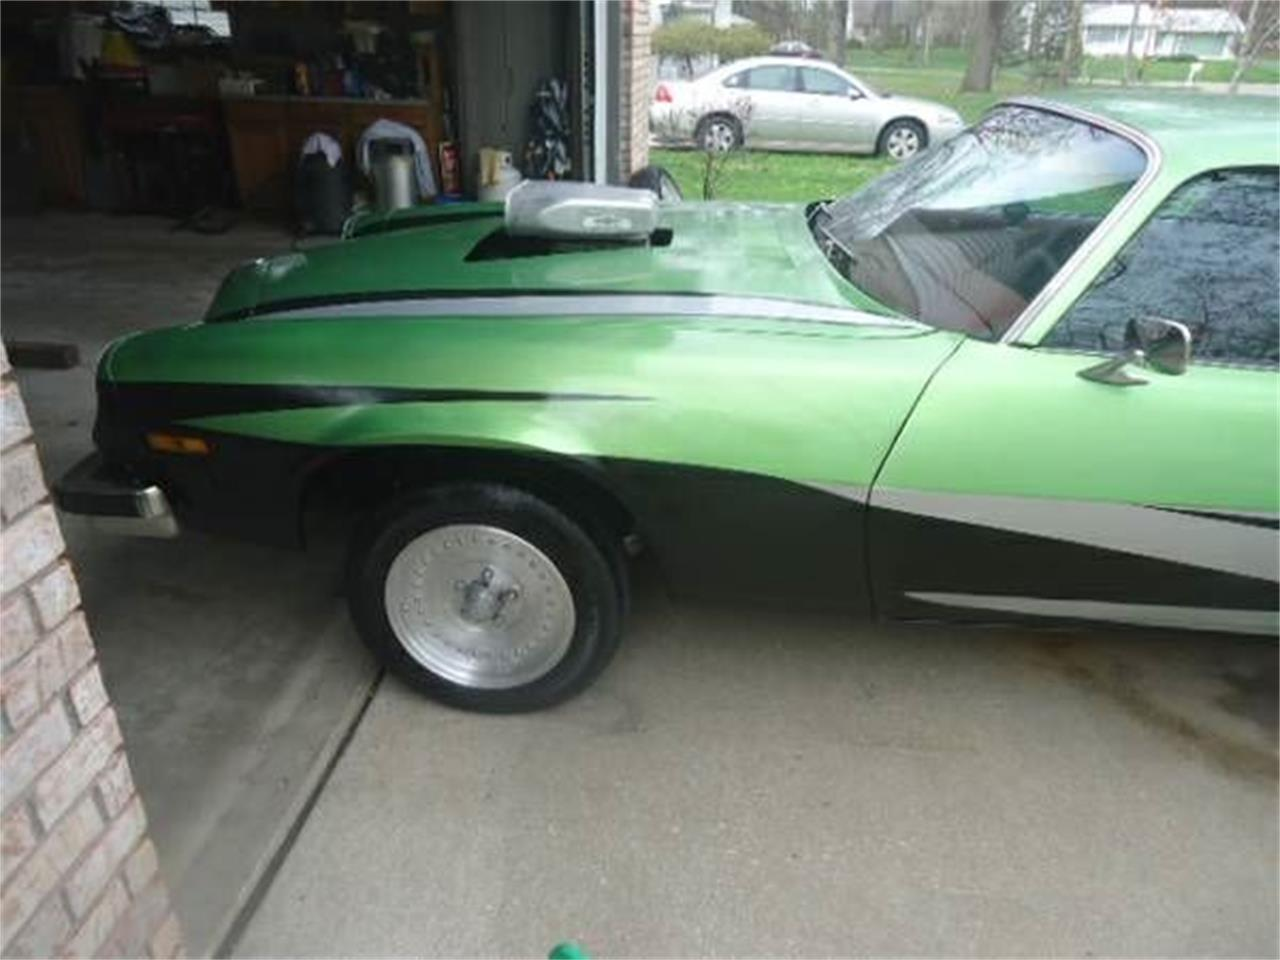 1976 Chevrolet Camaro for sale in Cadillac, MI – photo 4